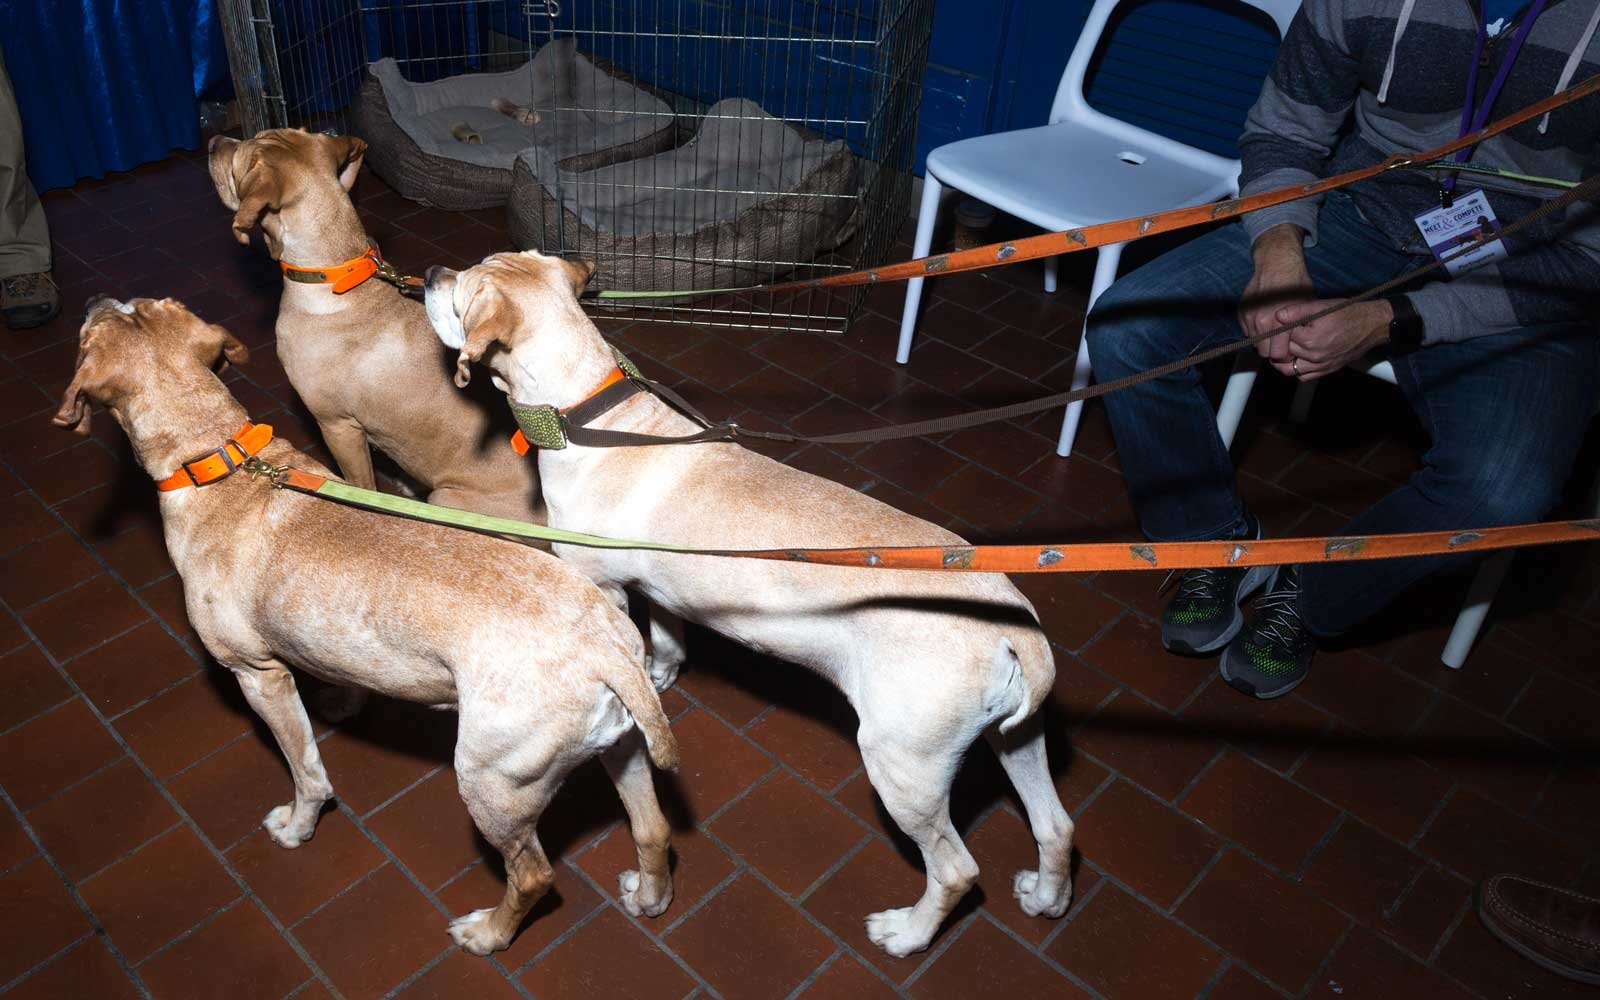 three-dogs-leash-WESTMINSTER0217.jpg